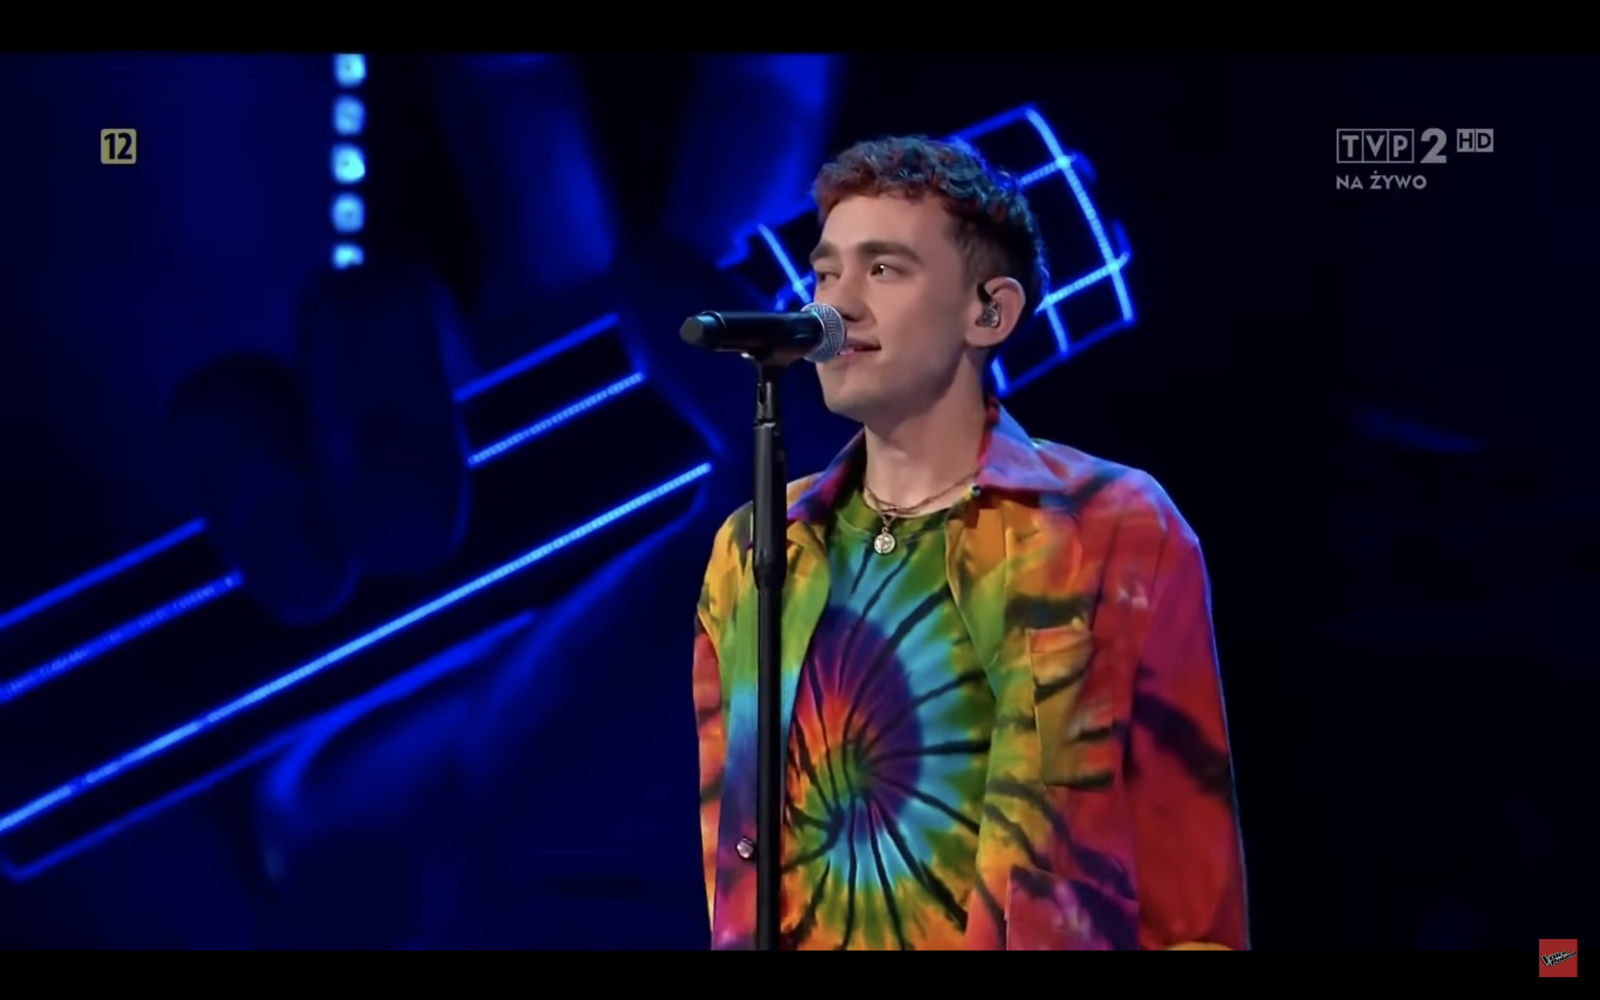 People Asked This Singer To Wear A Rainbow Outfit Onstage And His Response Was Amazing